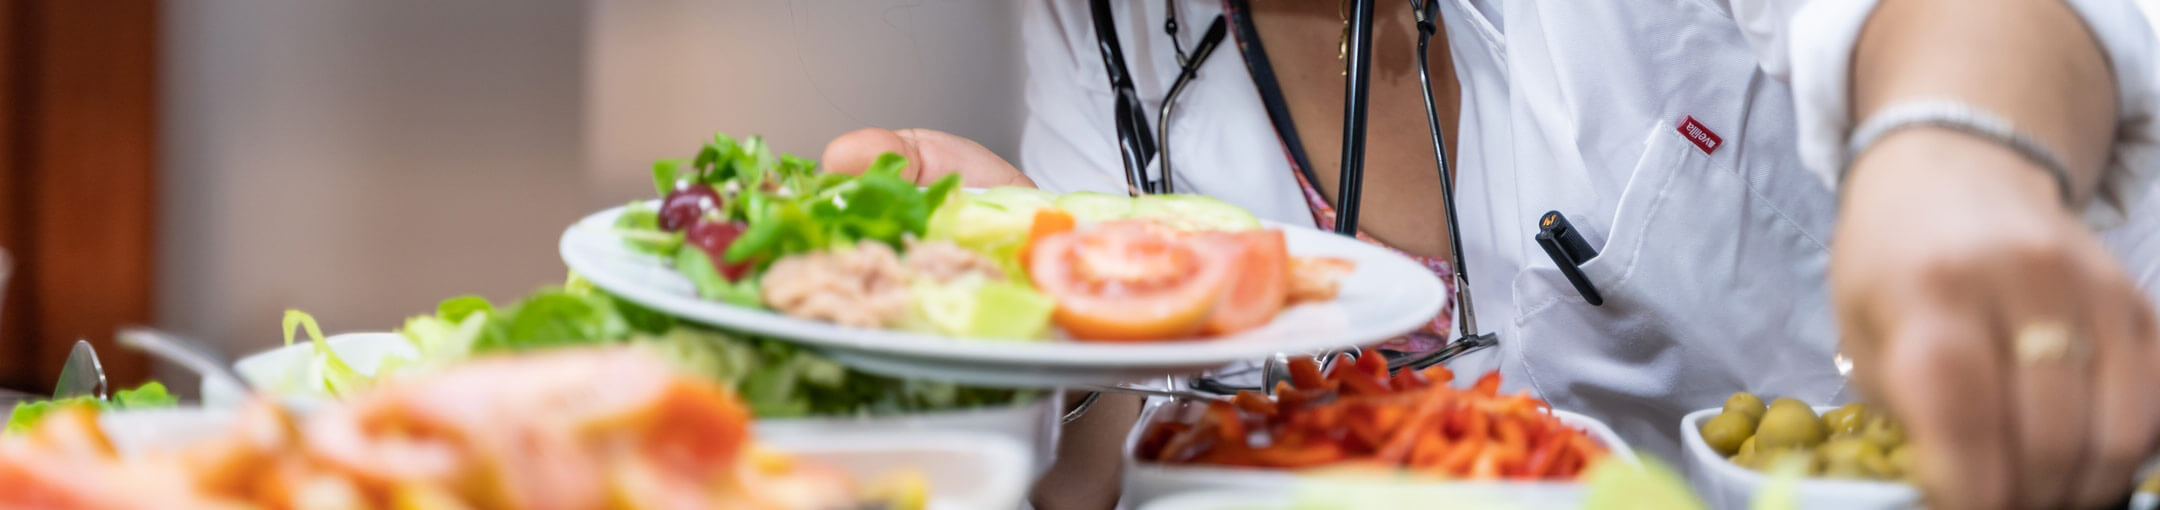 A medical professional adding salad toppings to their plate at a salad bar.